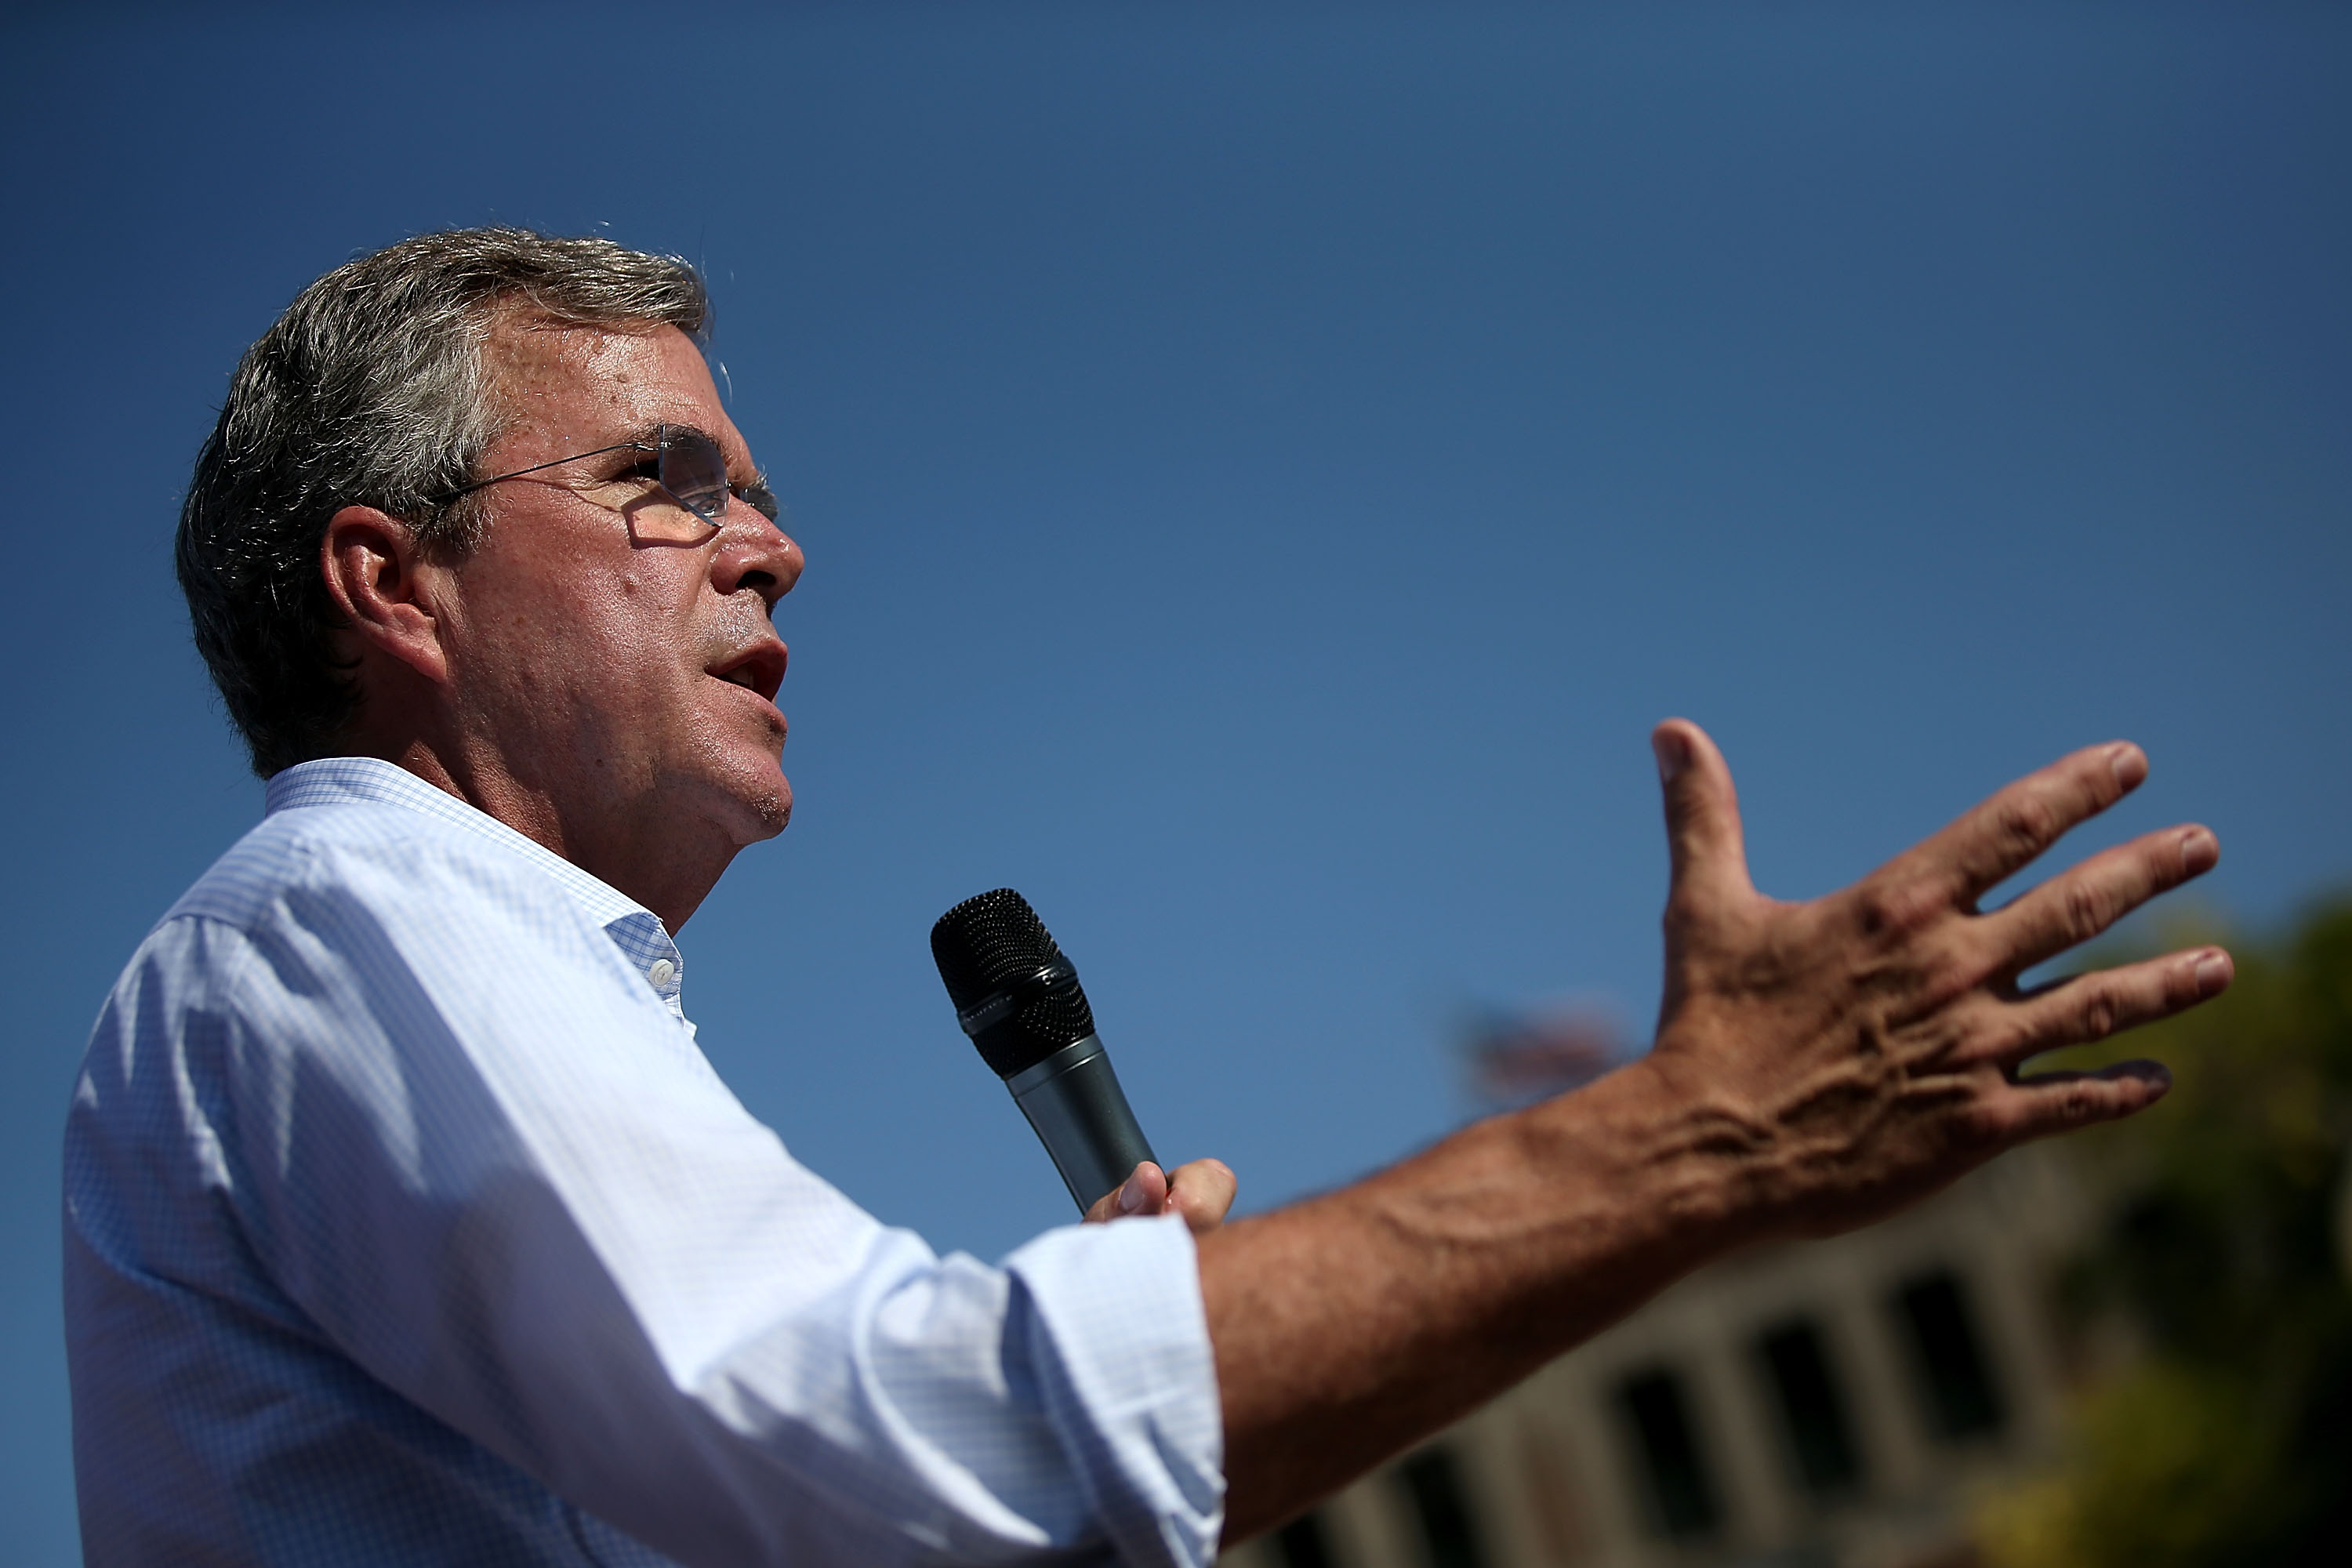 Republican presidential hopeful and former Florida Gov. Jeb Bush speaks to fairgoers during the Iowa State Fair on August 14, 2015, in Des Moines, Iowa.